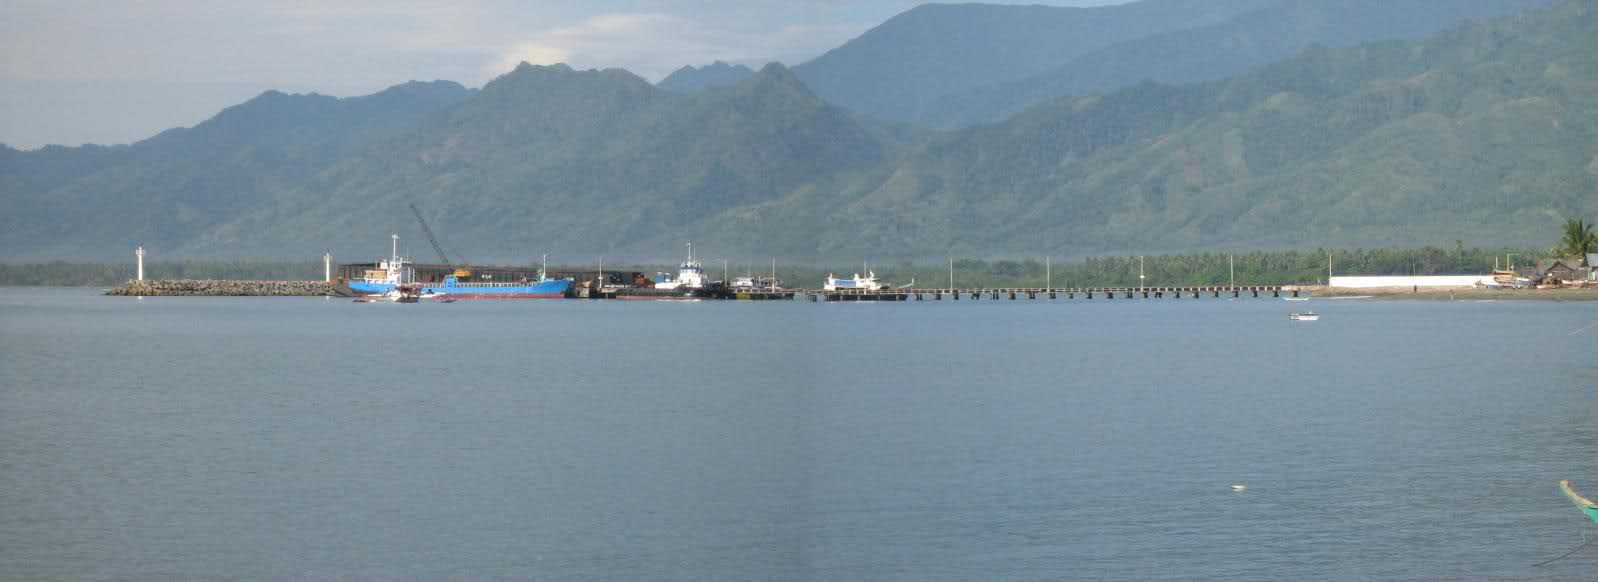 Brooke's Point Philippines  city photo : PUERTO PRINCESA CITY, 30 June PIA – The port of Brooke's Point ...